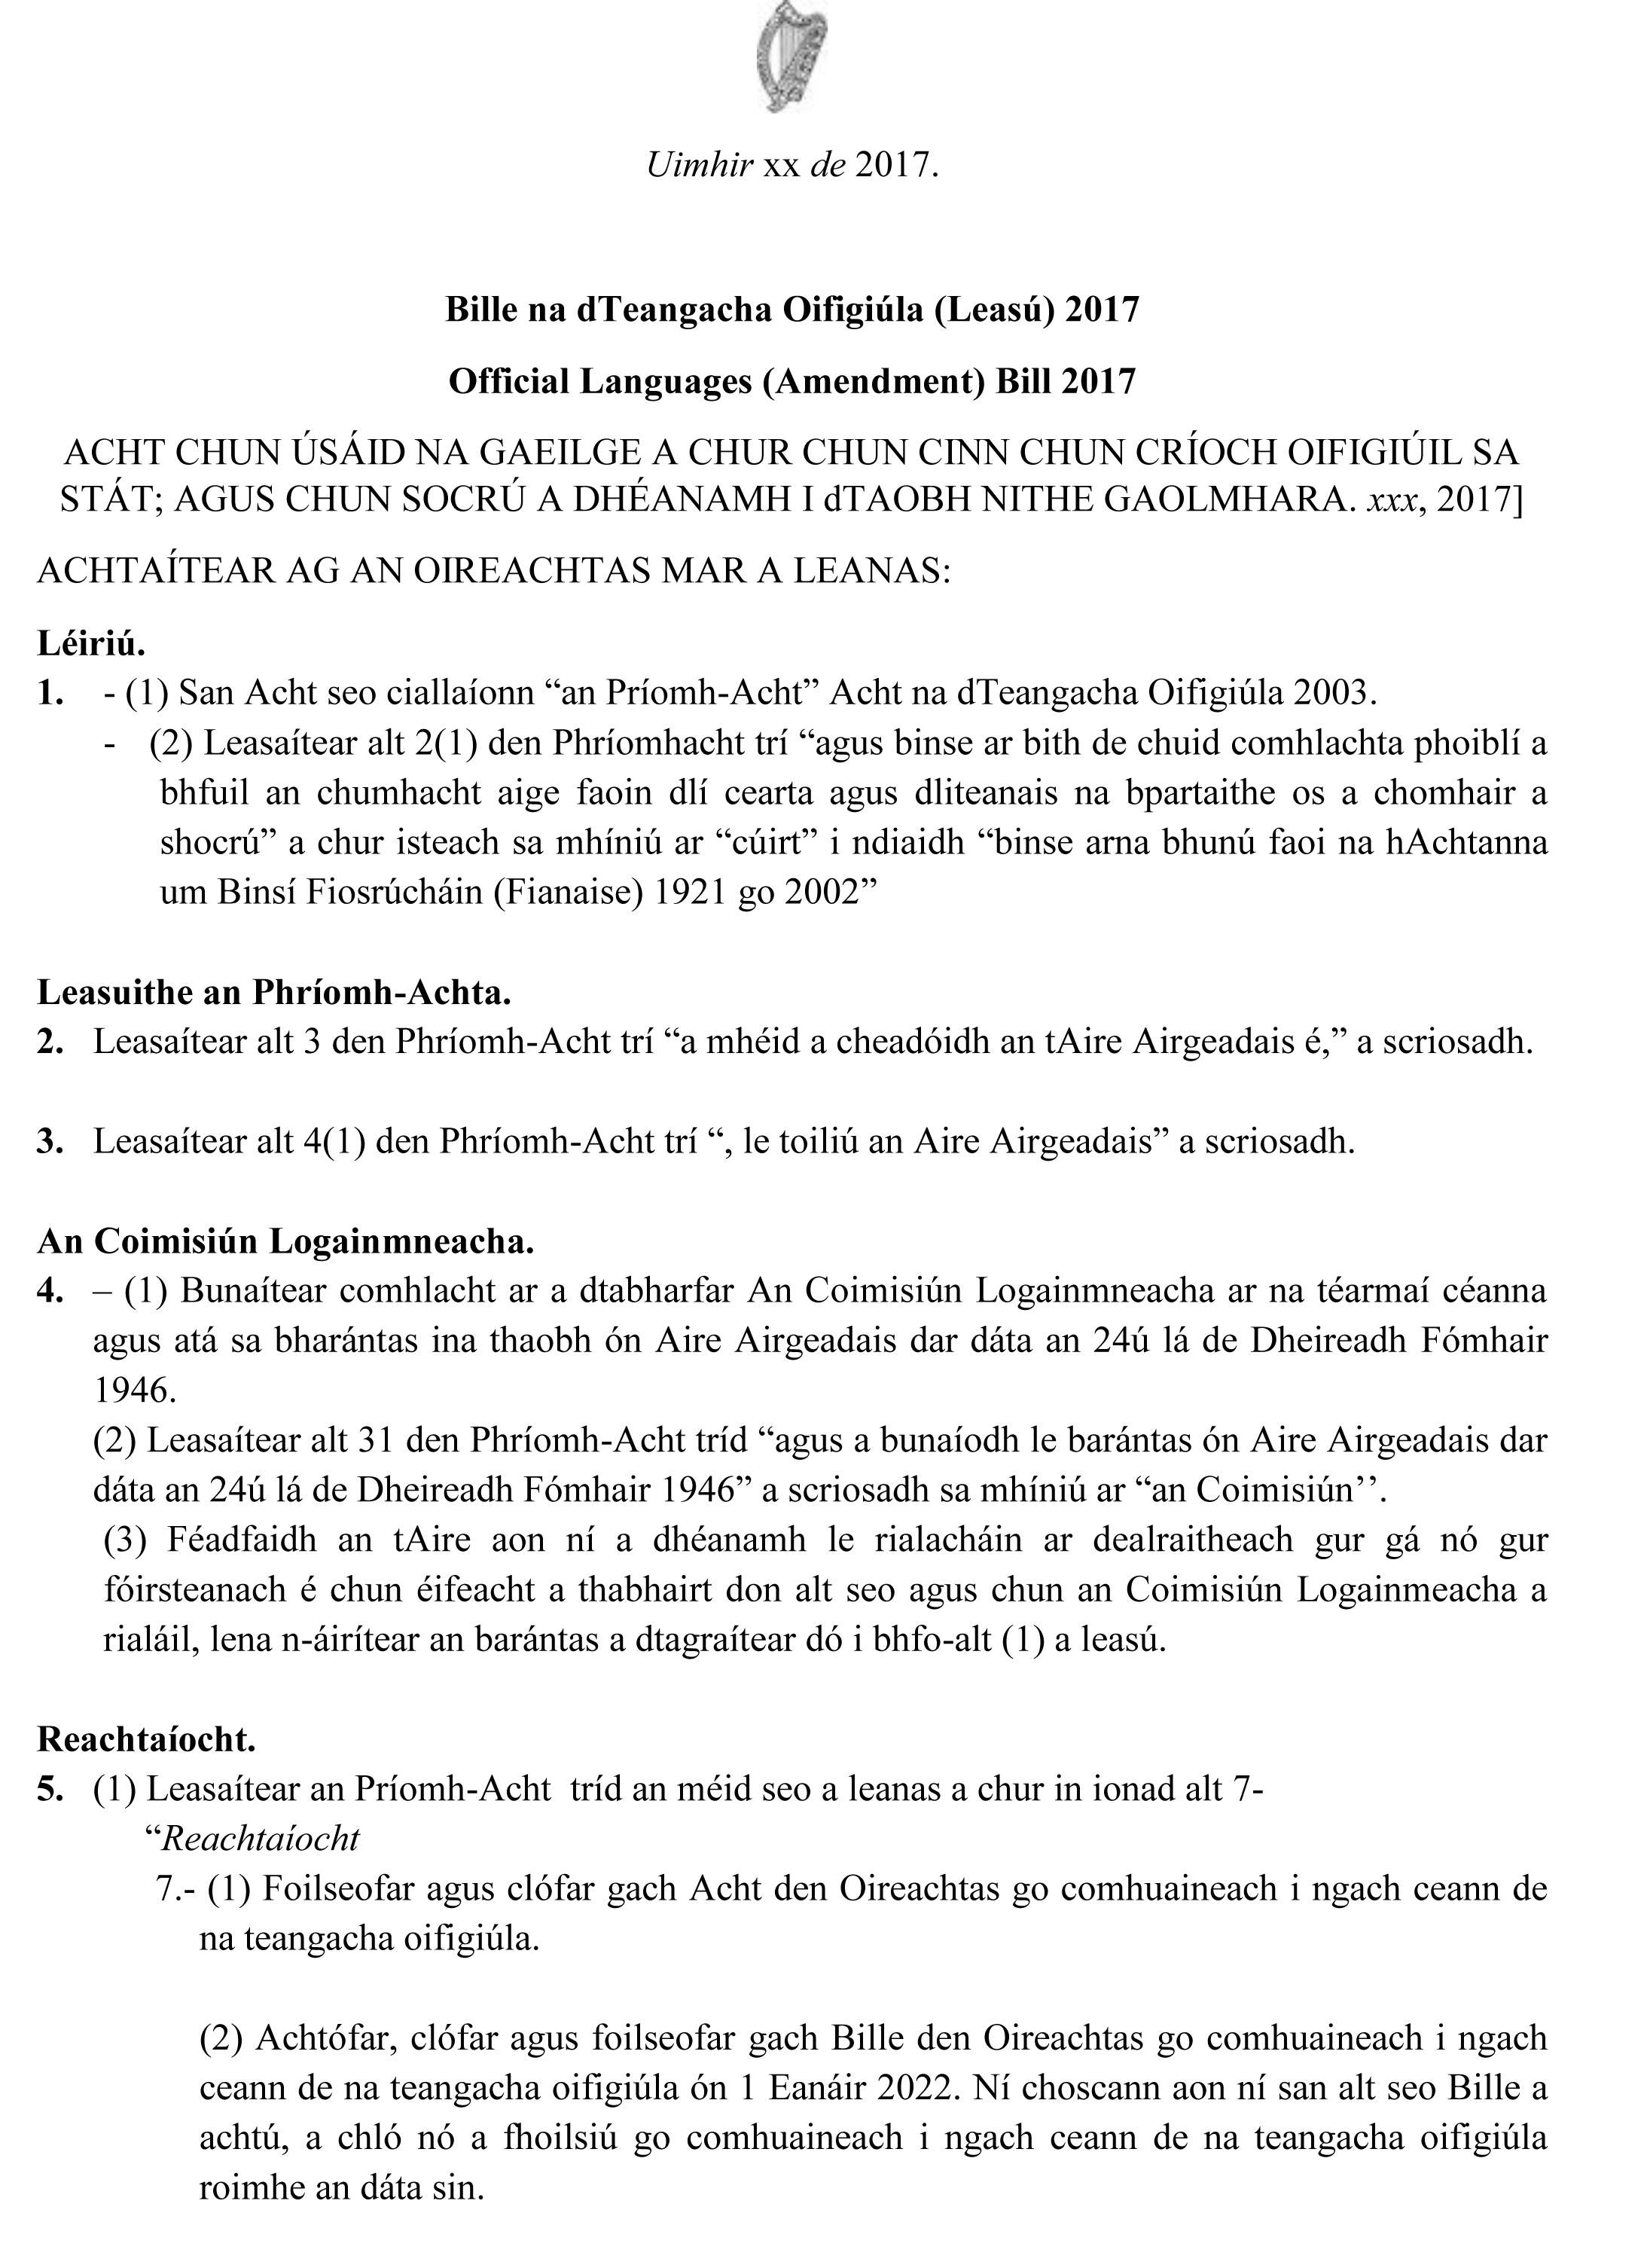 Official Languages Bill, 2017 | Conradh na Gaeilge's Proposed Amendments